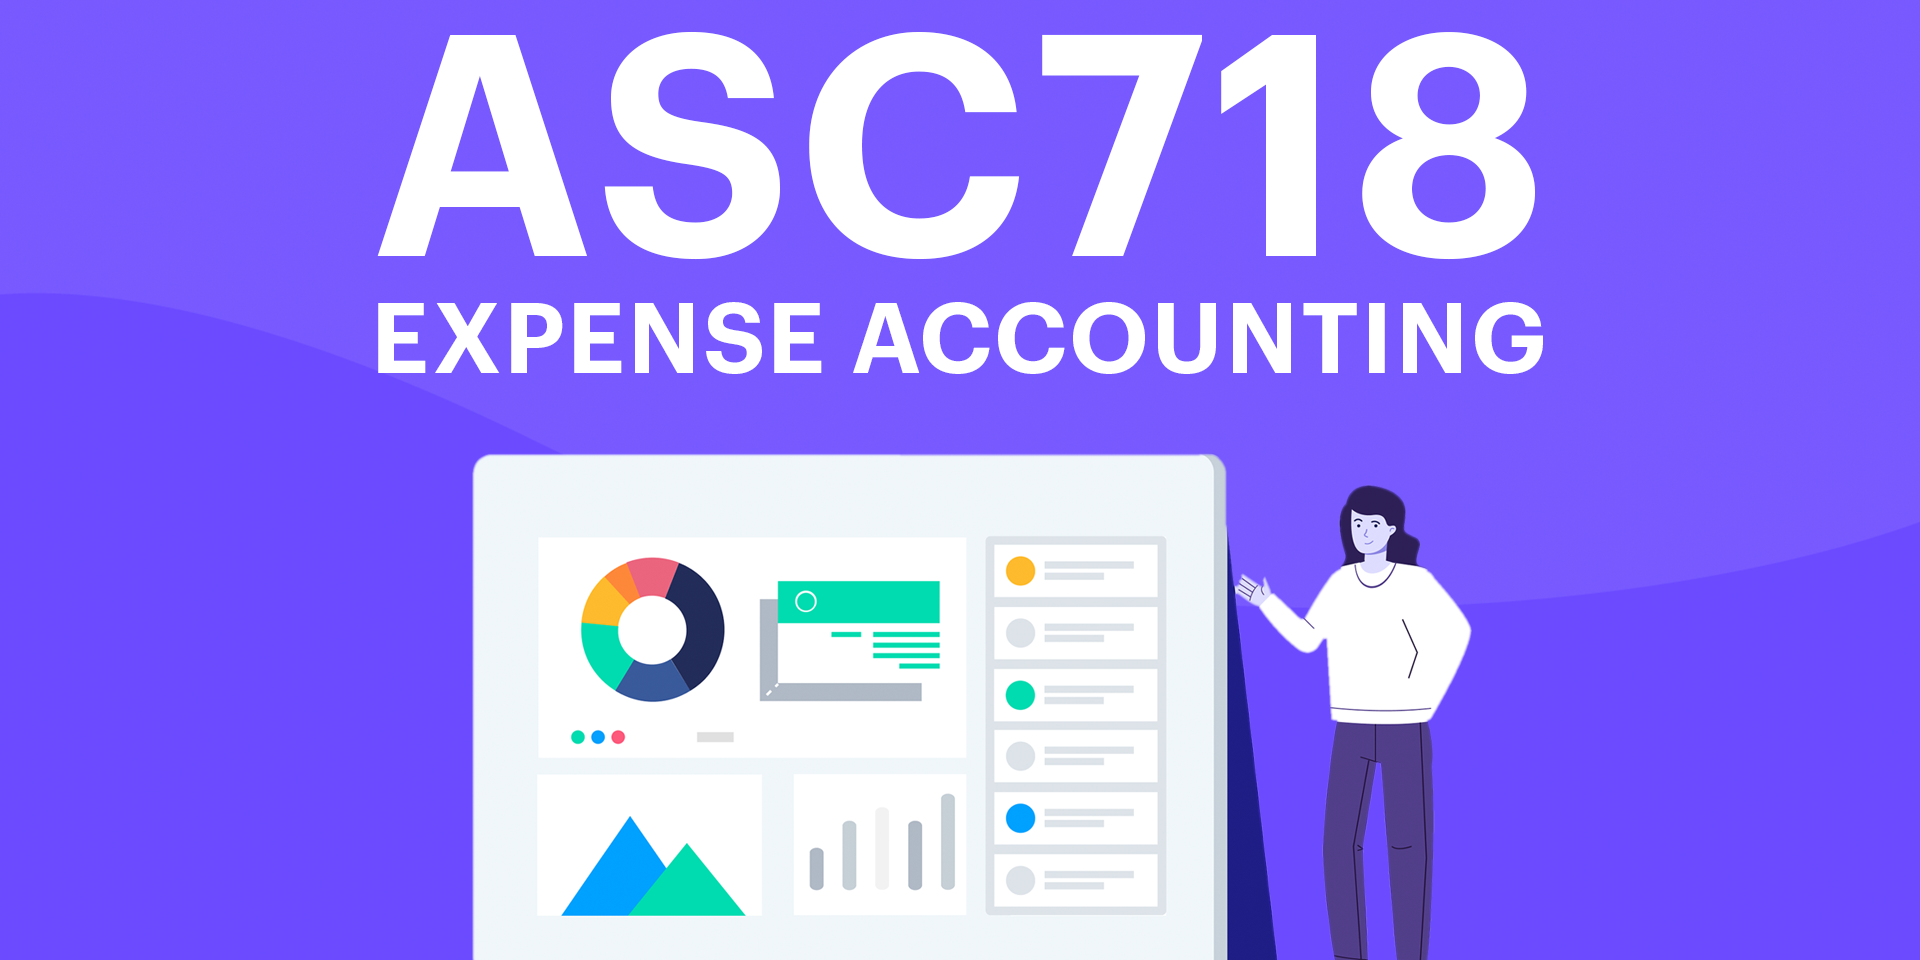 ASC718 expense accounting